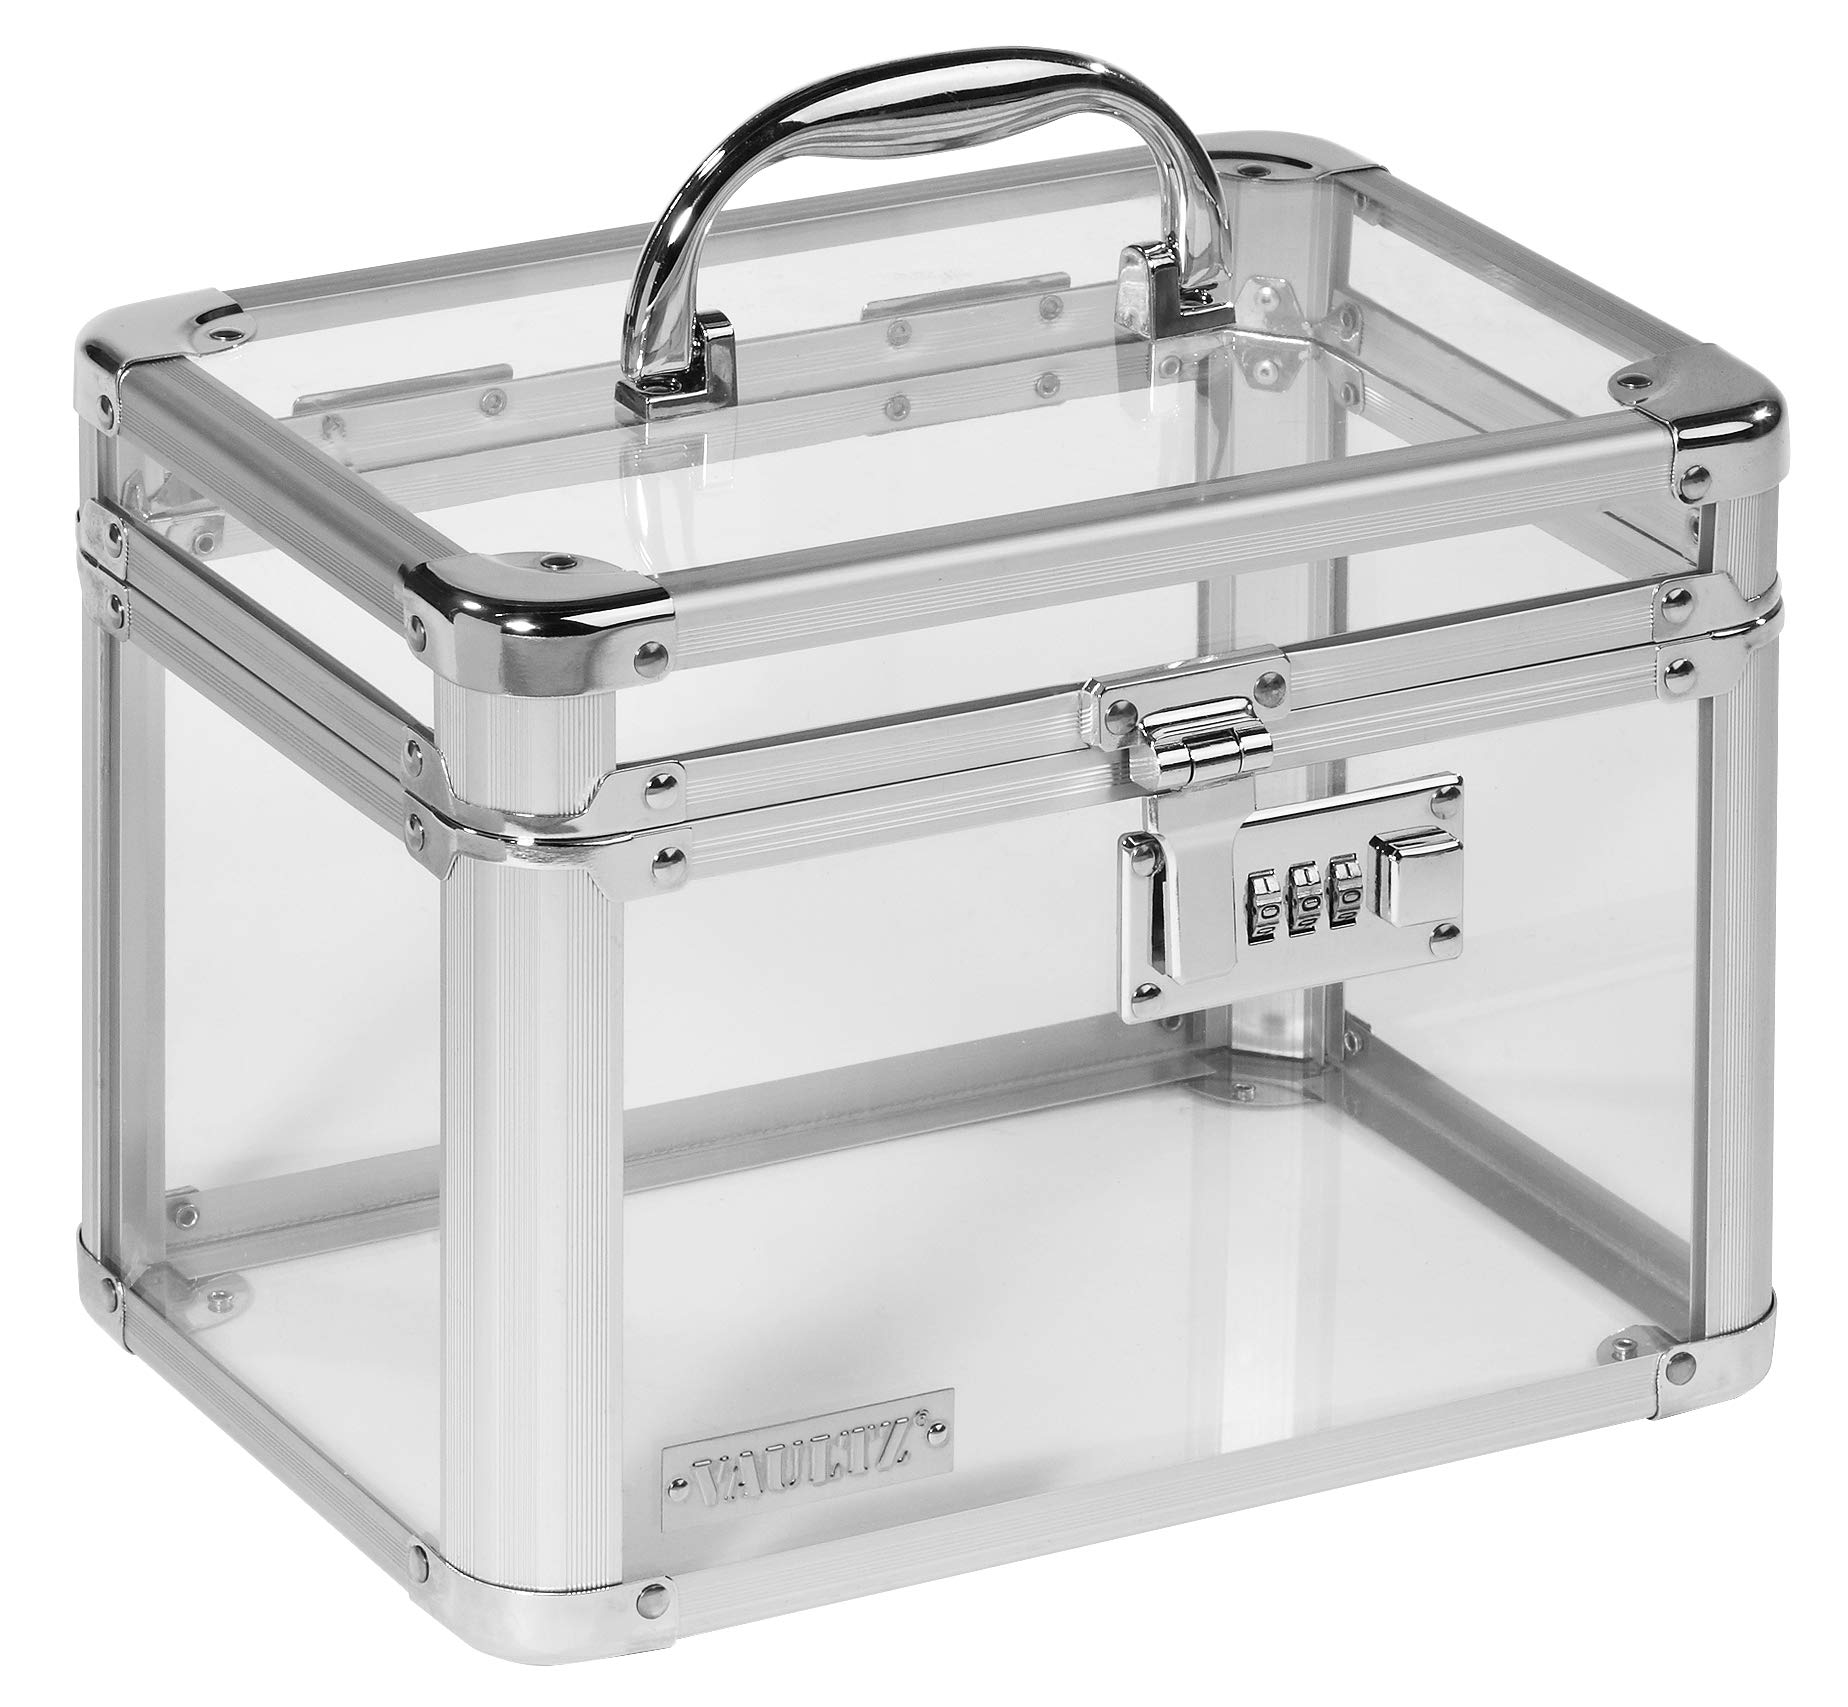 Vaultz Personal Storage Lockbox, Combination Lock, Clear Acrylic and Steel, 10'' x 7.8'' x 7.2'', Clear (VZ00155)